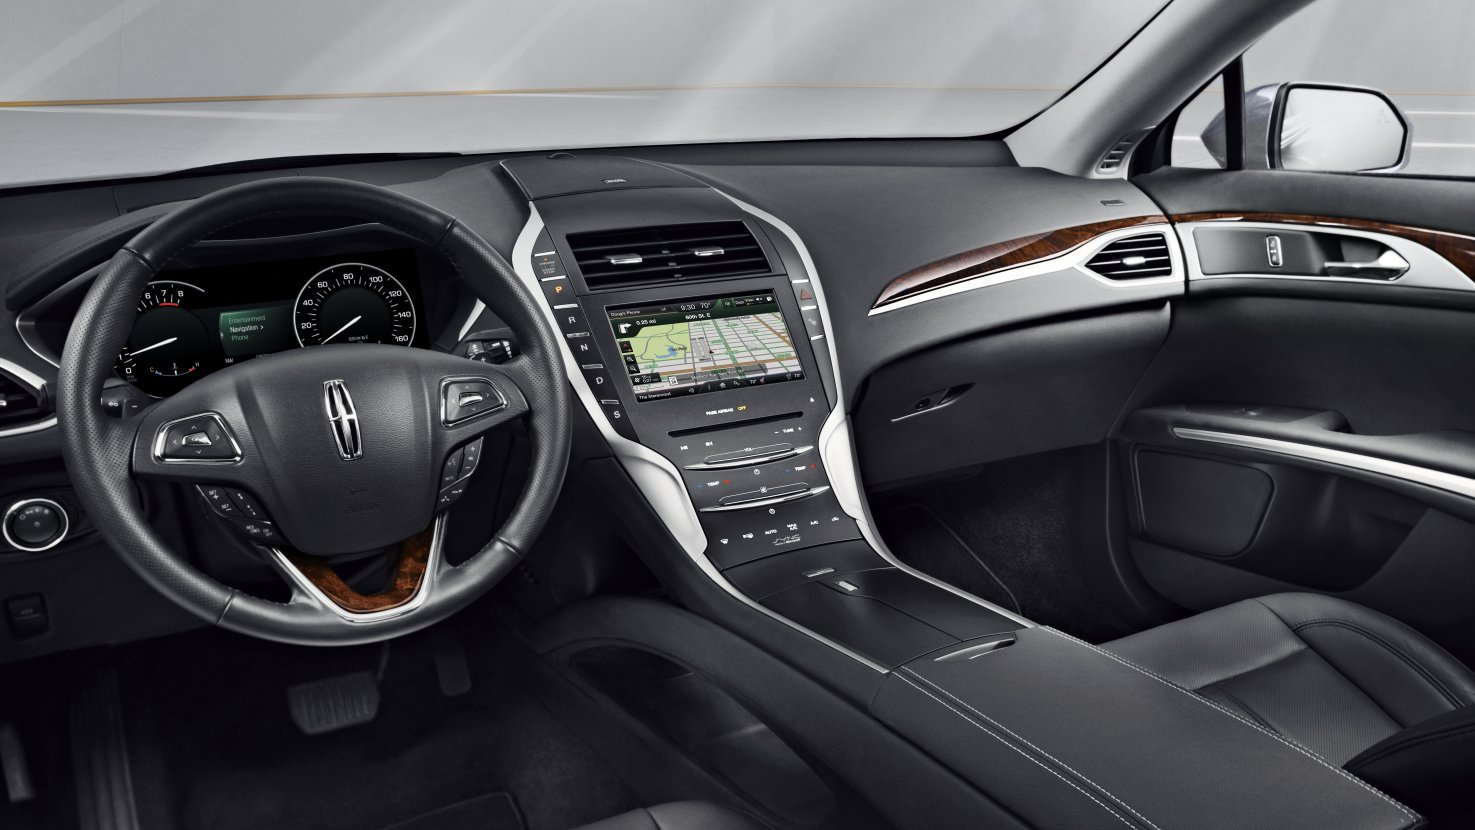 lincoln mkc image car pricing large featured news mkz autotrader announced